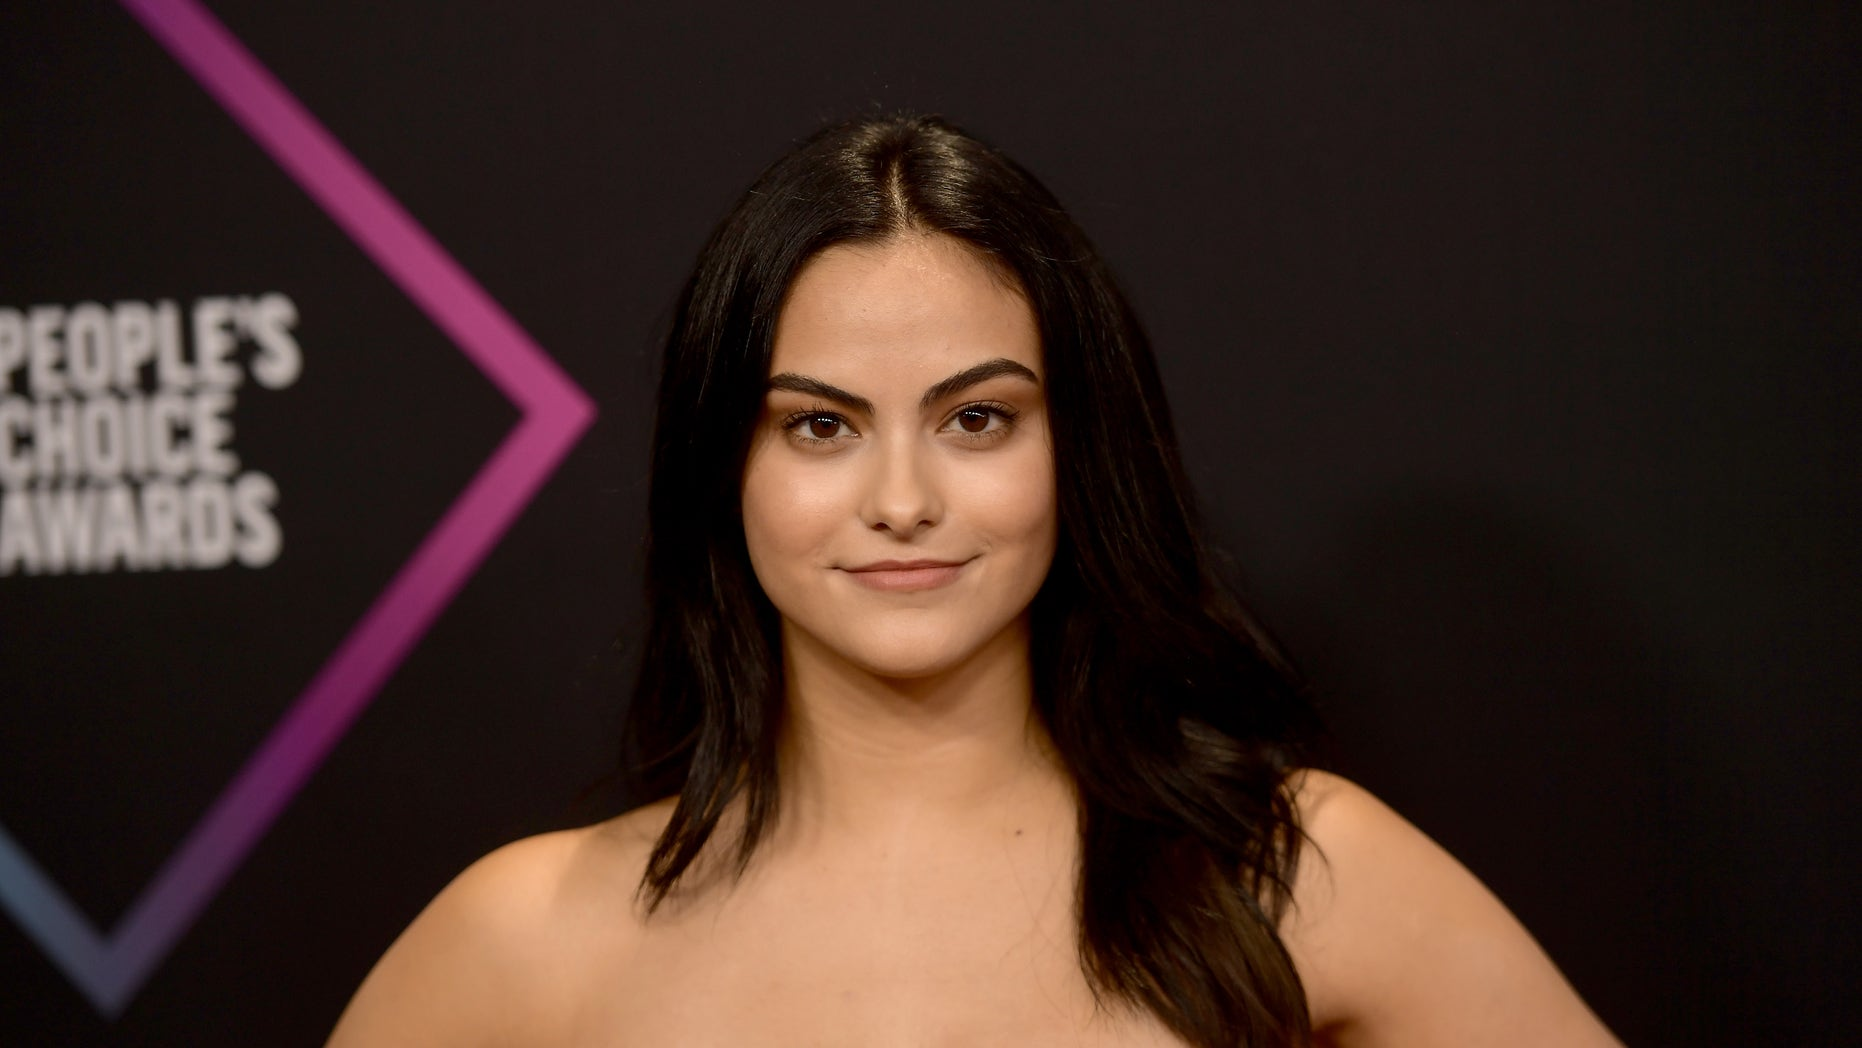 'Riverdale' actress Camila Mendes opened up about her personal life.